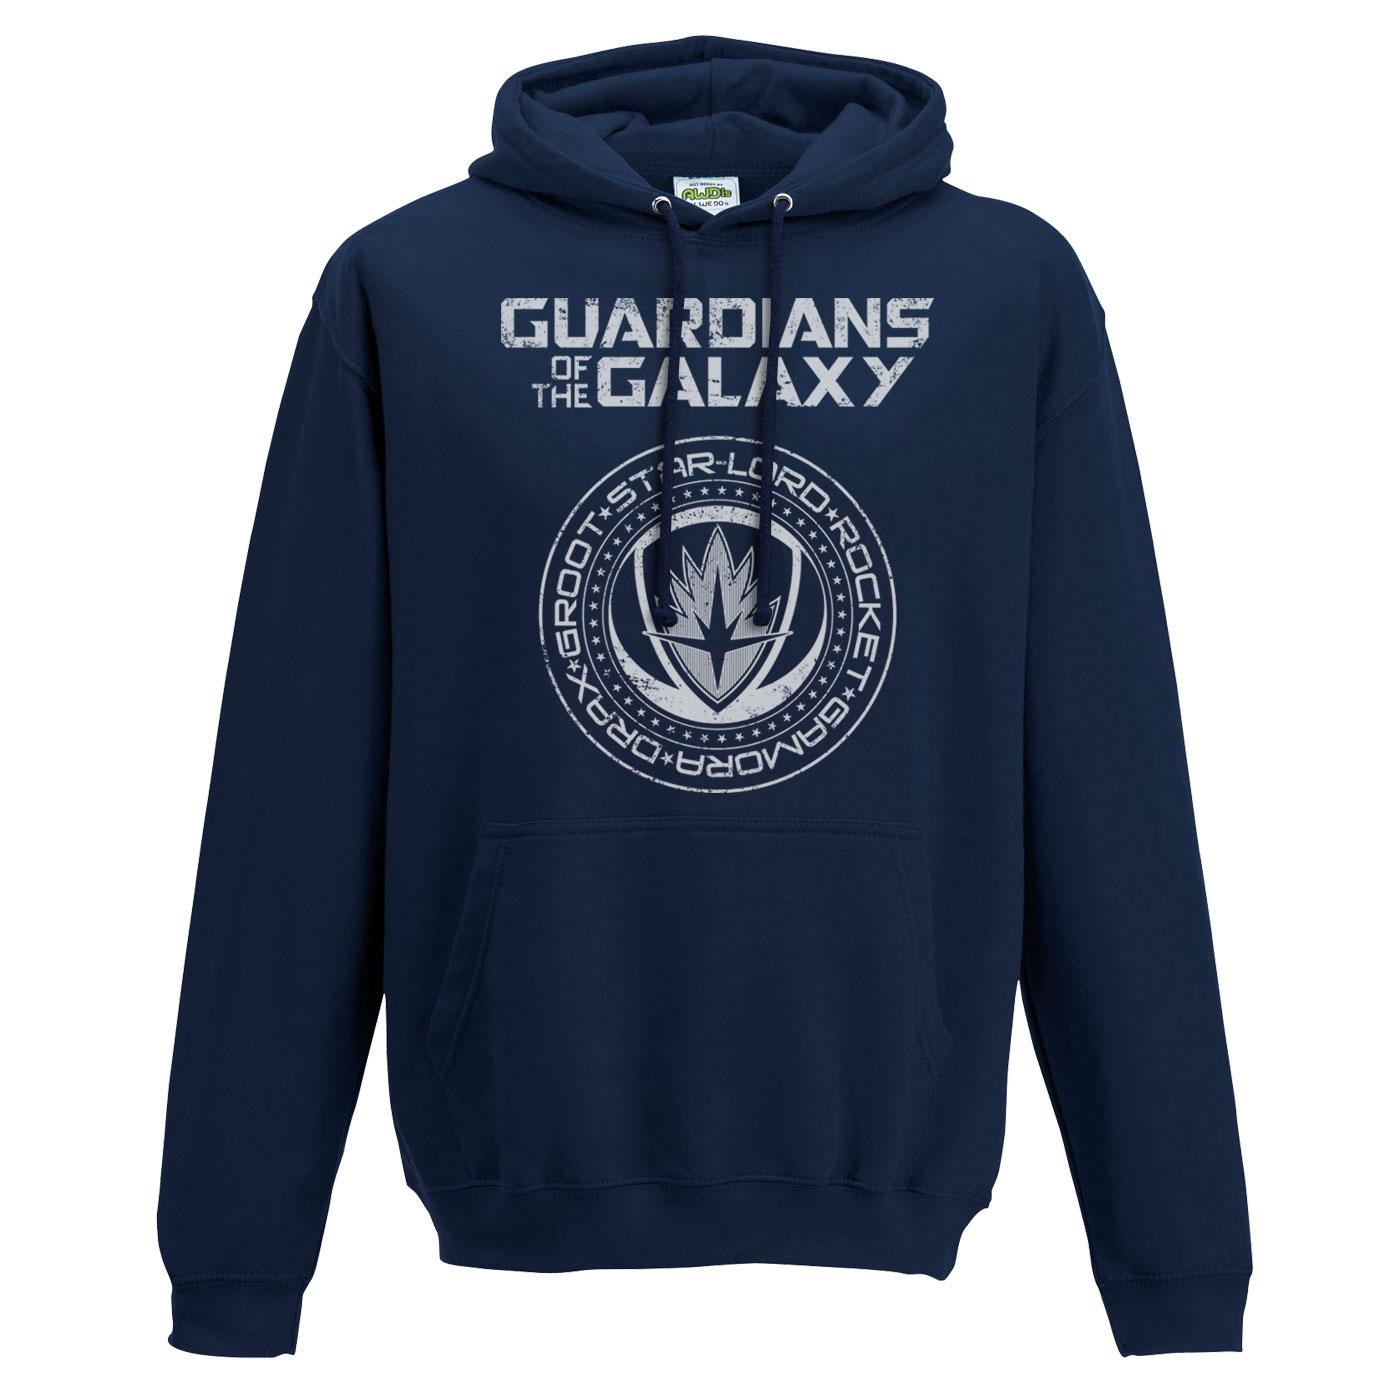 Guardians of the Galaxy 2 Hooded Sweater Crest Size M